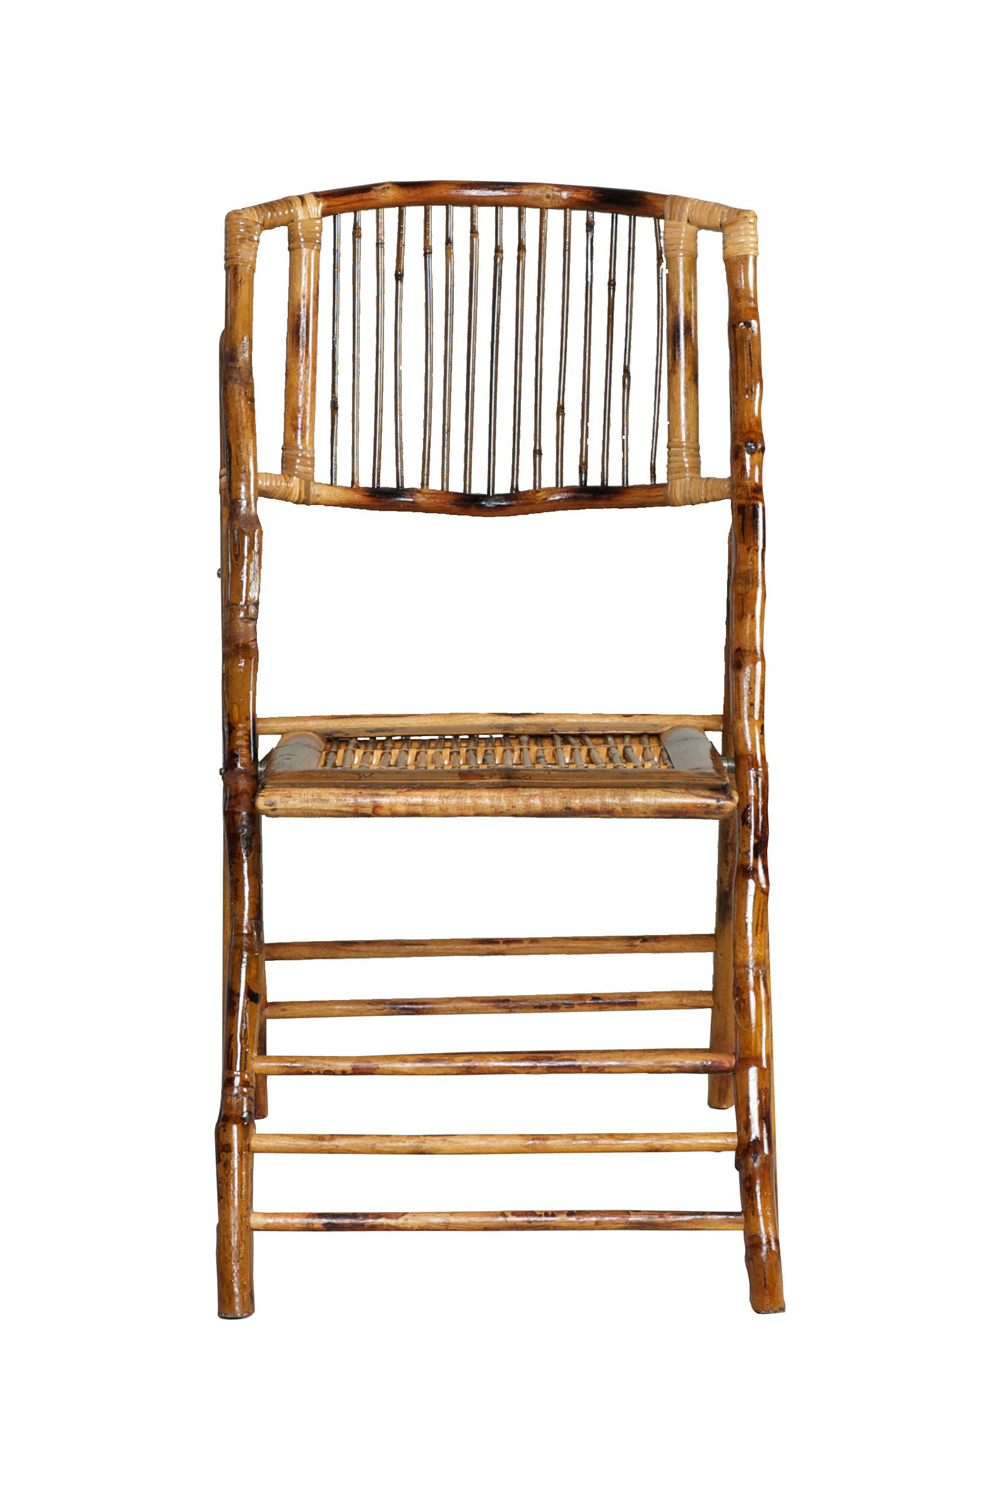 bamboo dining chair replacement slings for pvc chairs signature boutique event rentals maui hawaii